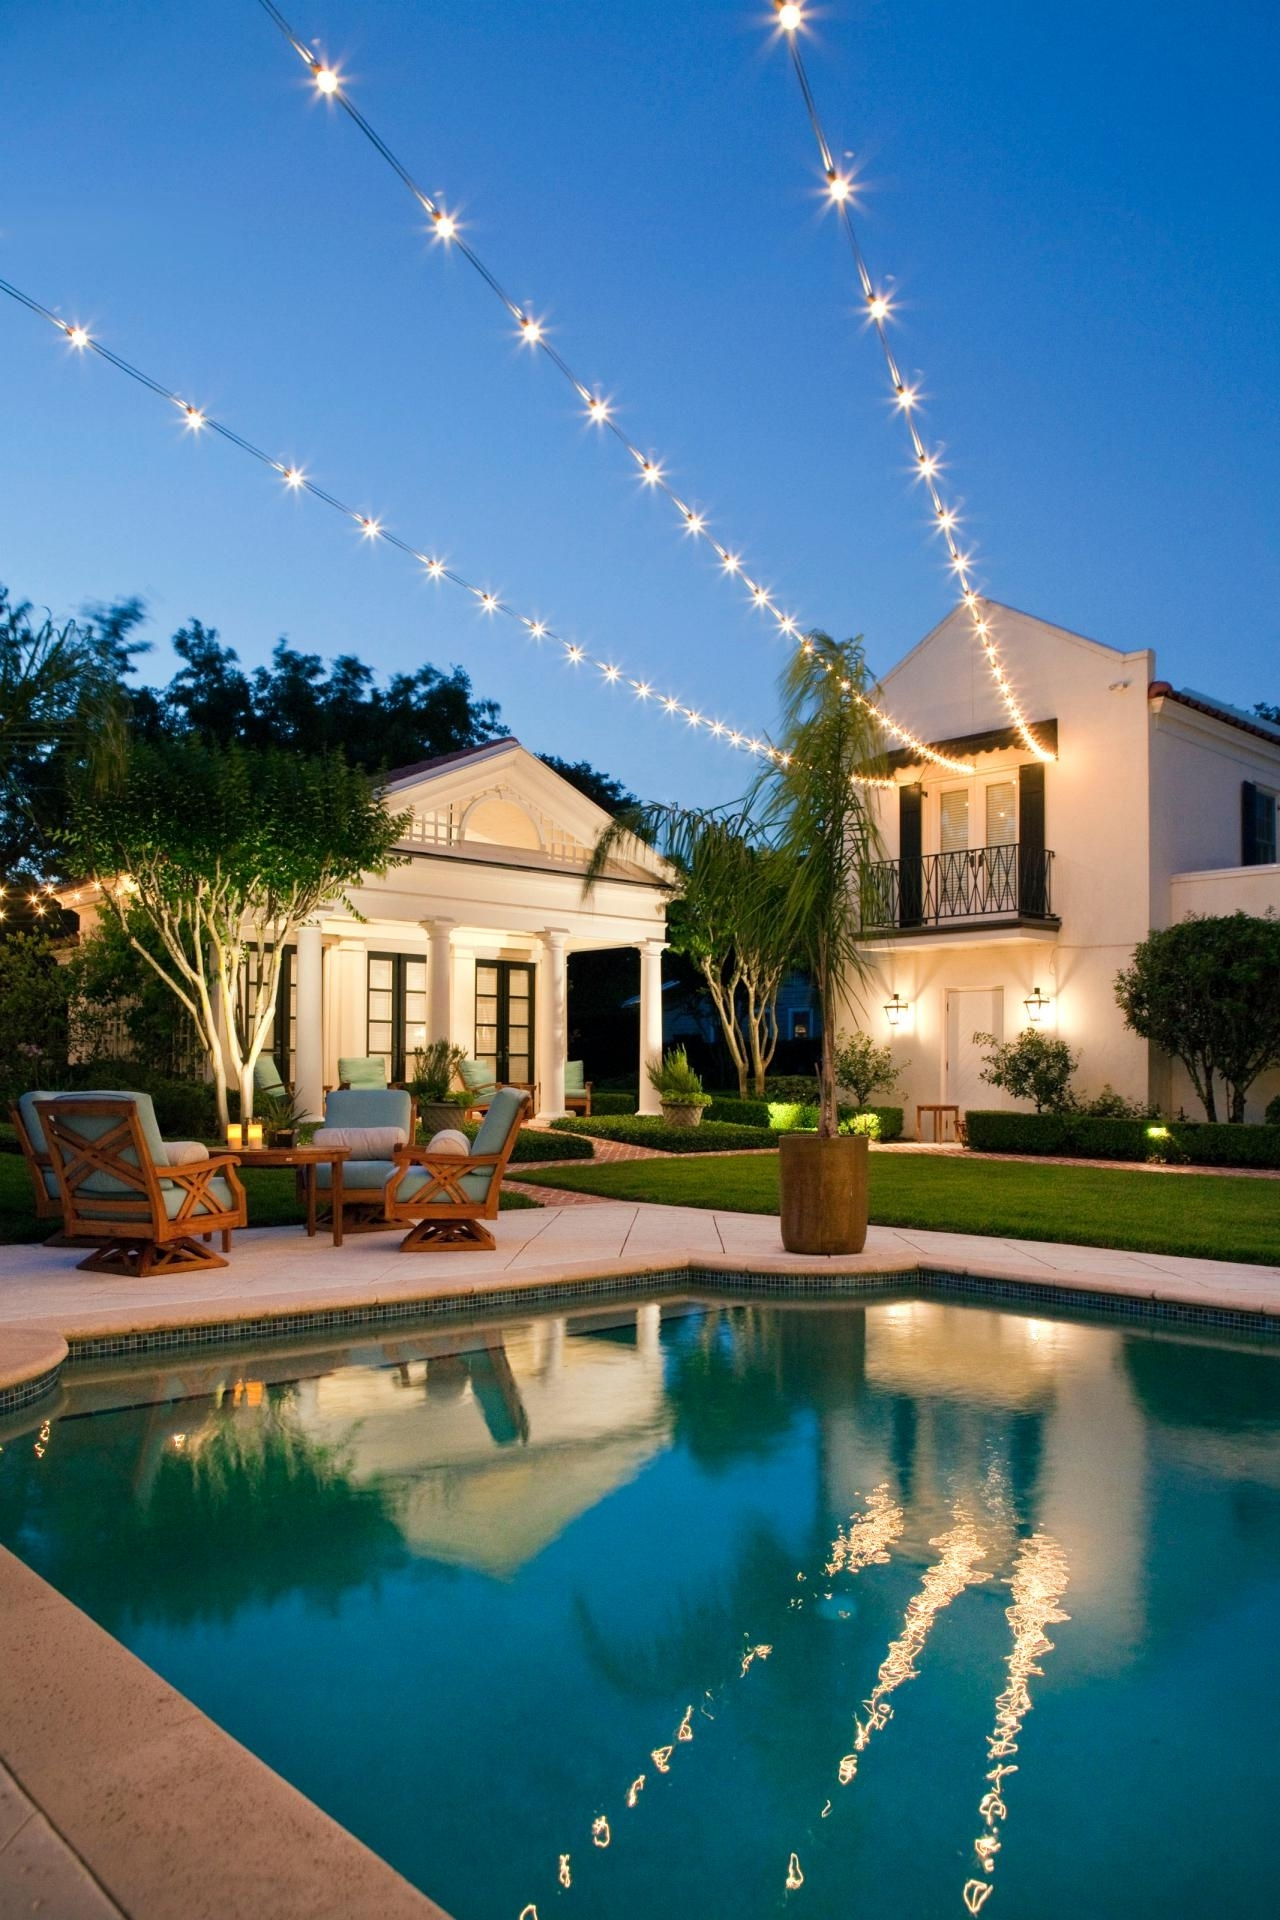 20 Best Collection of Hanging Outdoor Lights On Fence Fence Lighting Ideas String Html on interior string lighting ideas, patio string lighting ideas, pergola string lighting ideas, backyard string lighting ideas, garden string lighting ideas, deck string lighting ideas, porch string lighting ideas,